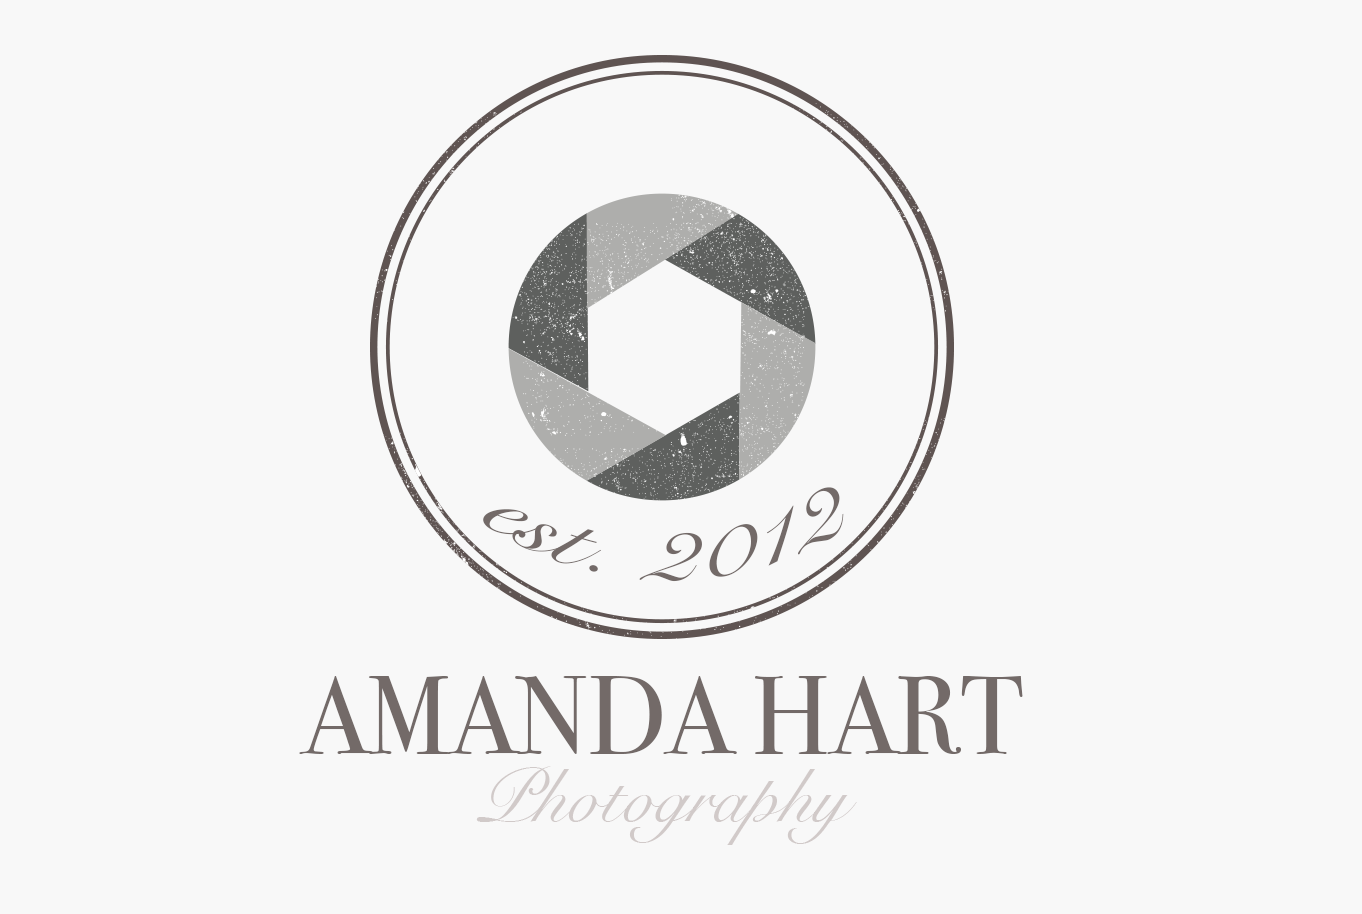 Amanda Hart Photography